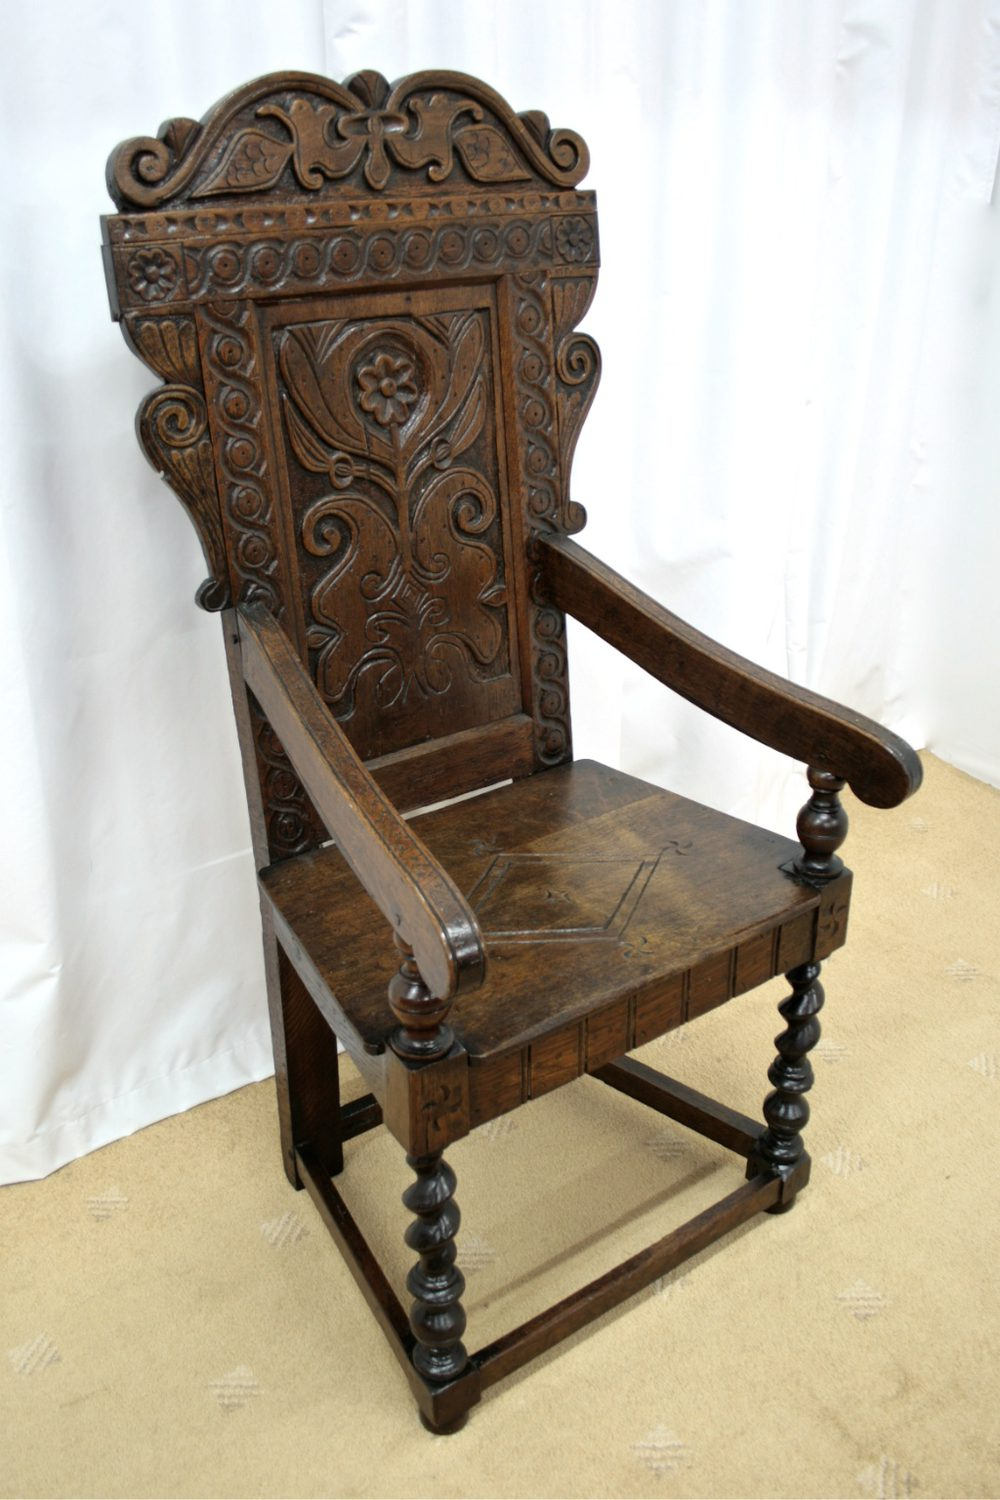 19th century oak wainscot style chairs antiques atlas. Black Bedroom Furniture Sets. Home Design Ideas